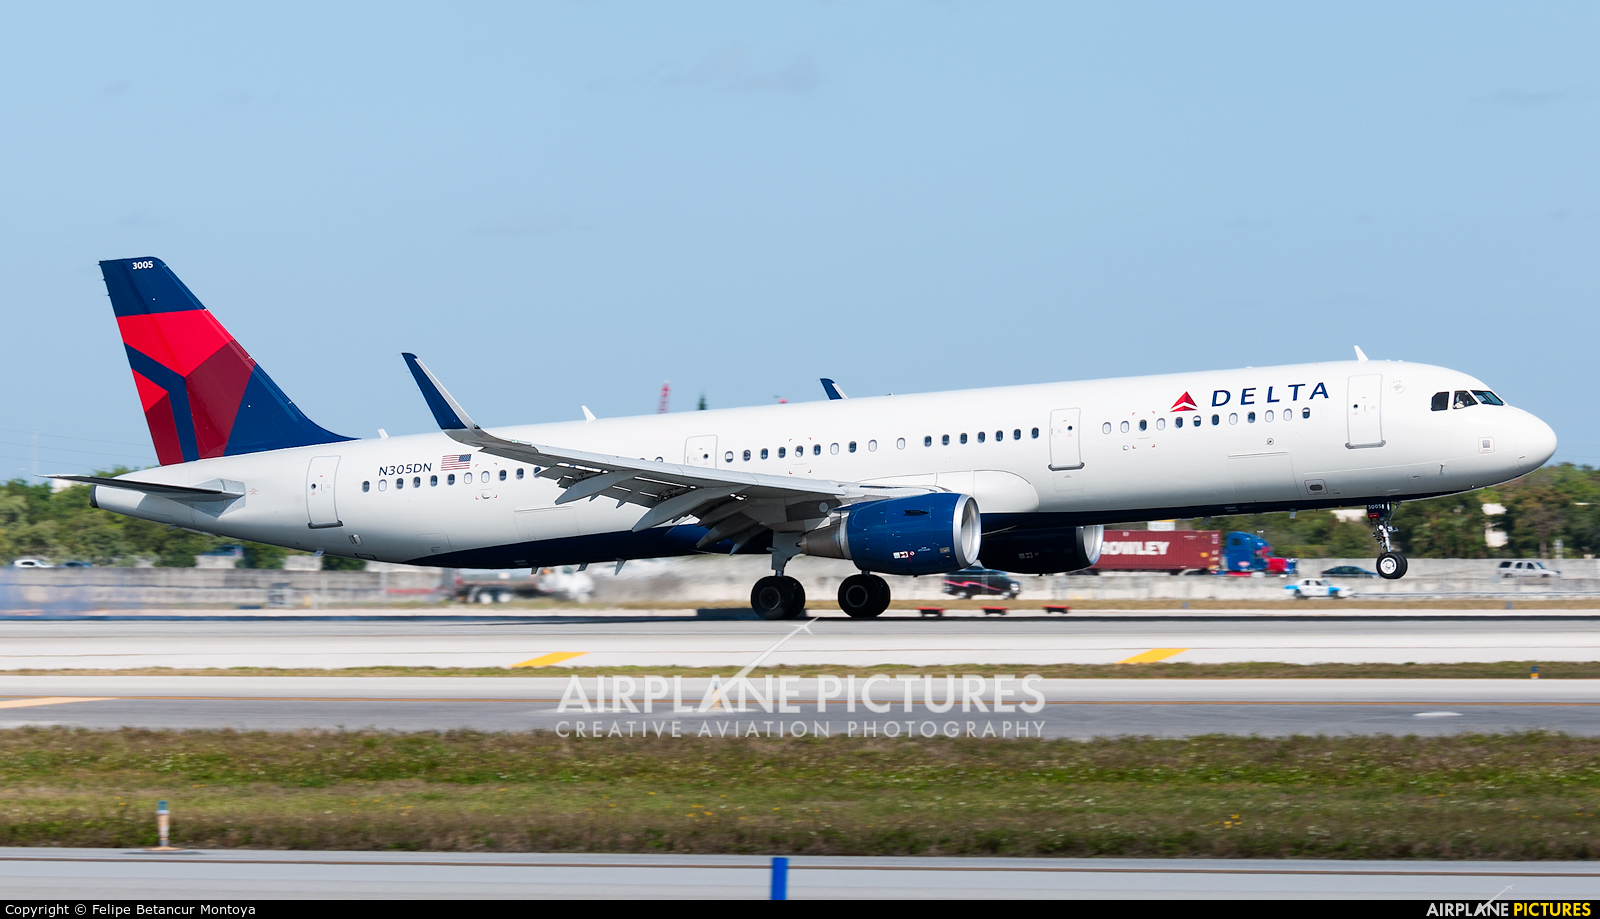 Delta Air Lines N305DN aircraft at Fort Lauderdale - Hollywood Intl